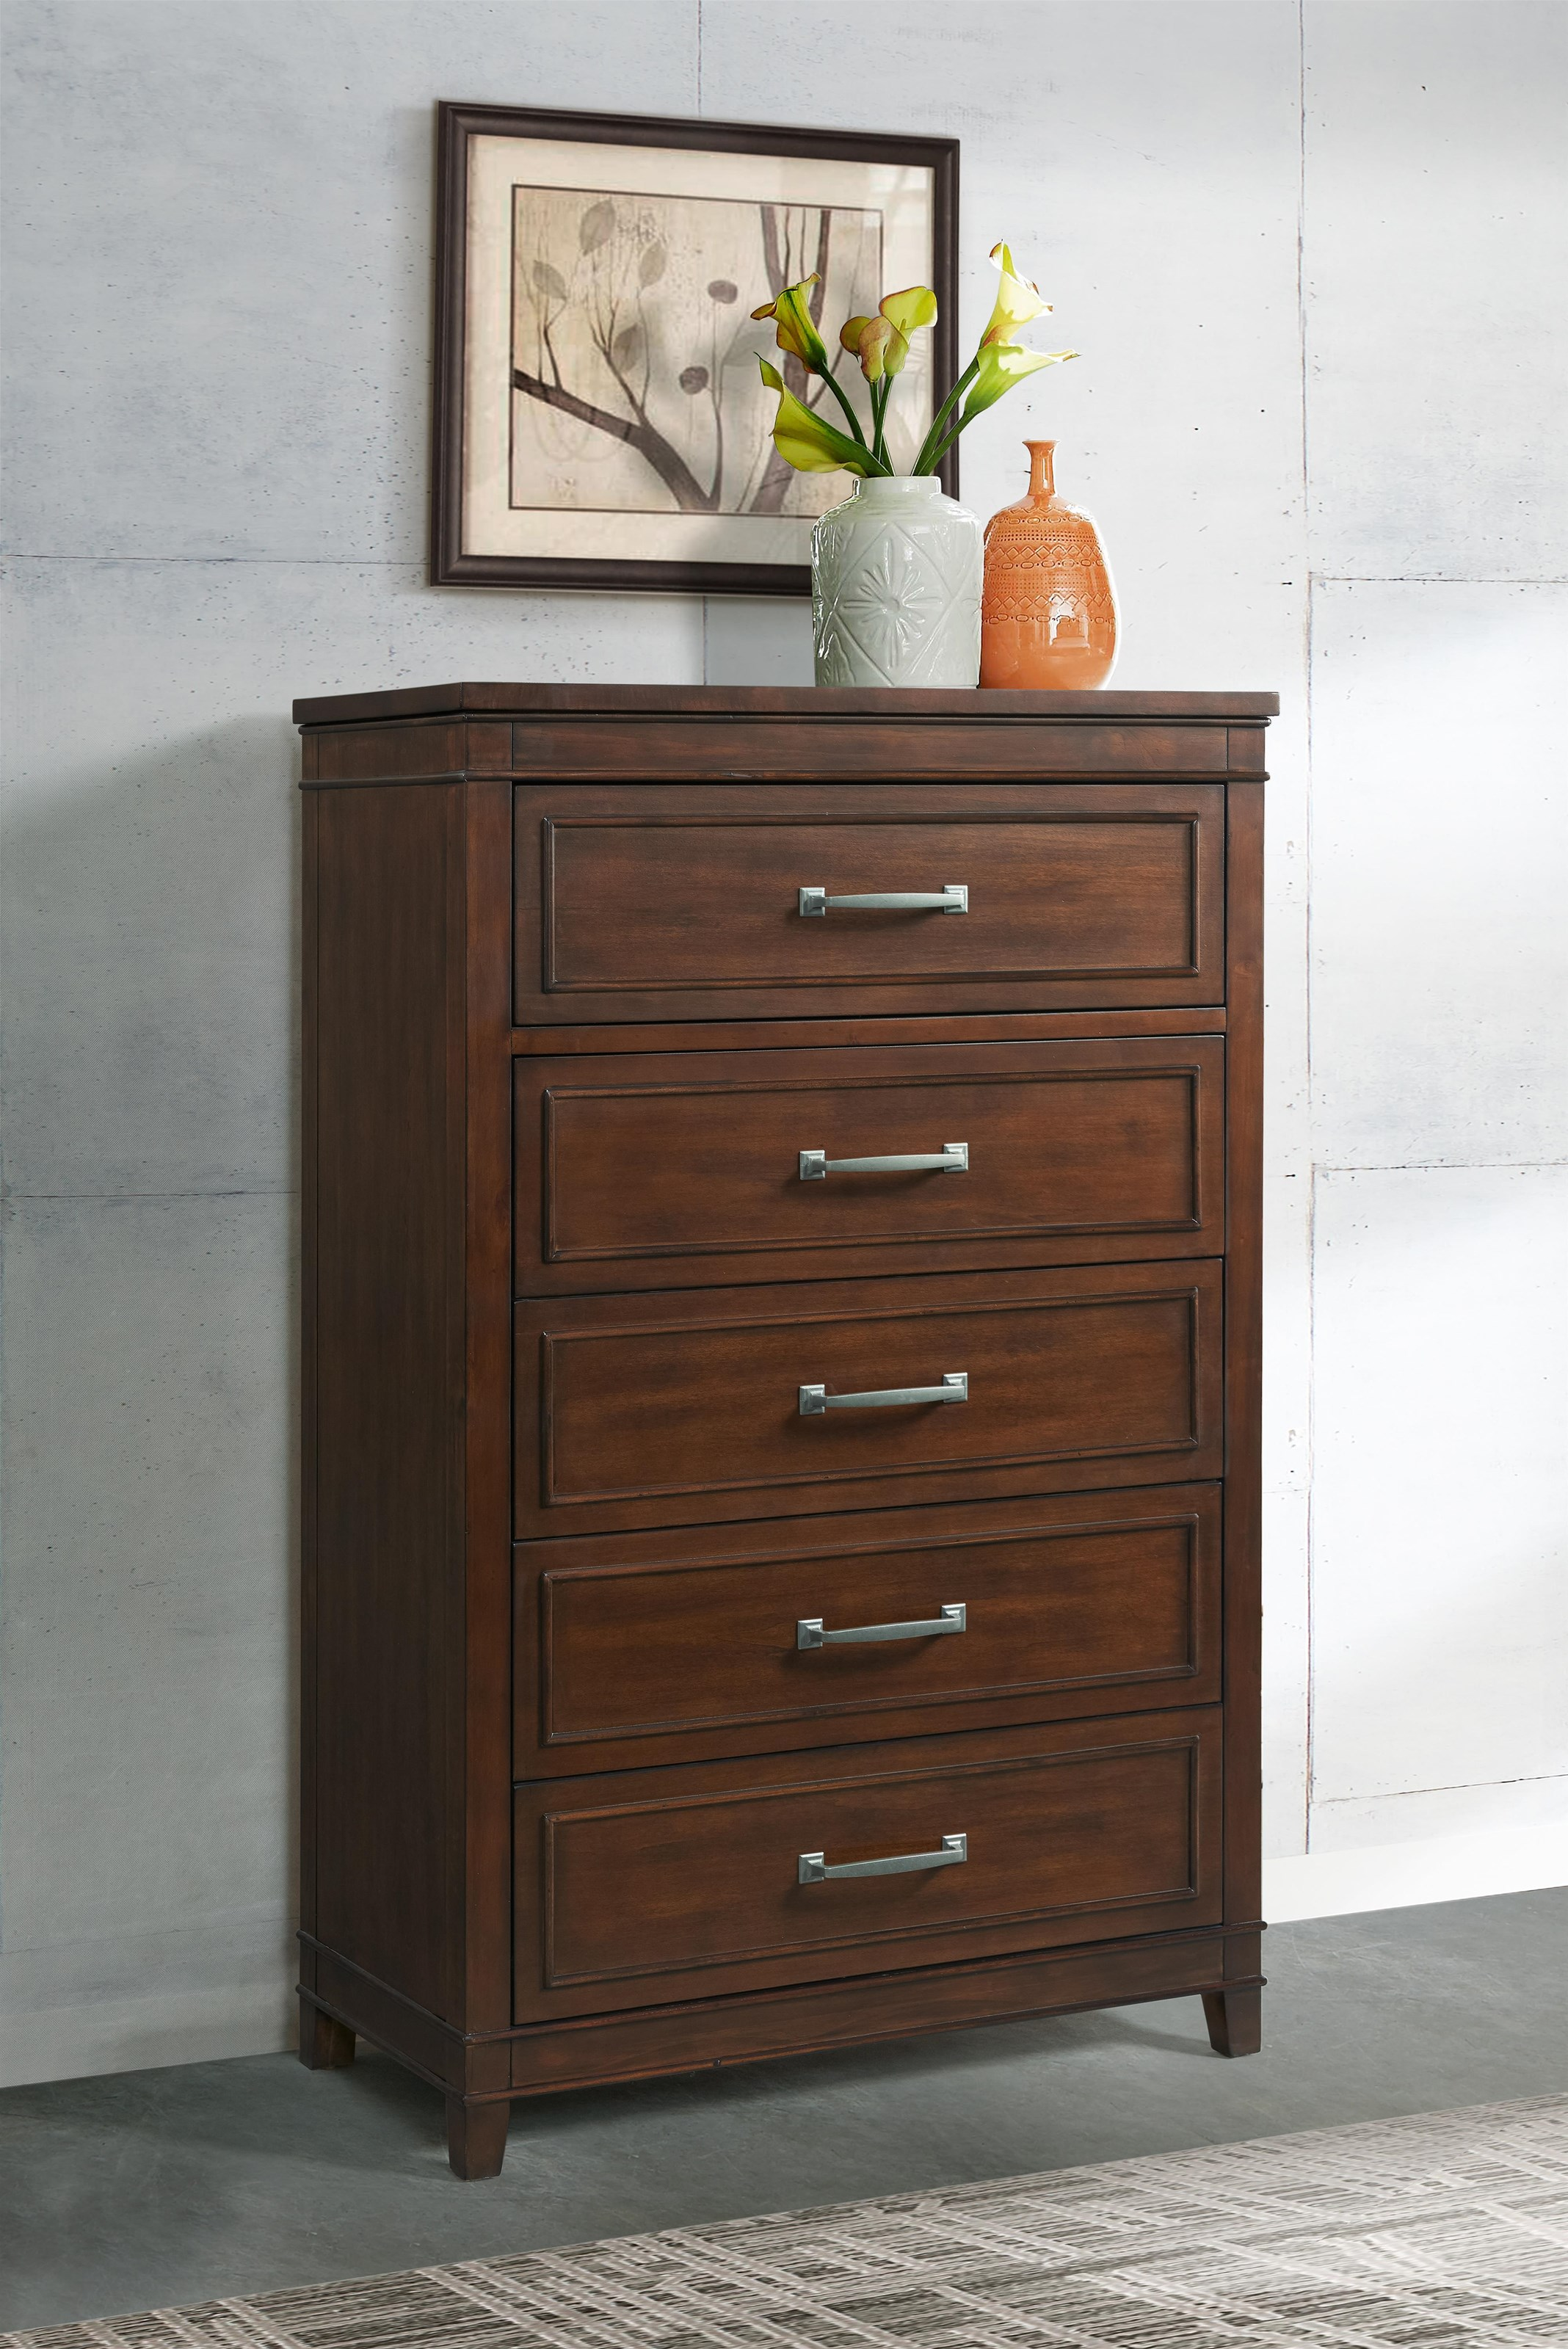 LaJolla 5 Drawer Chest by Martin Svensson Home at Darvin Furniture